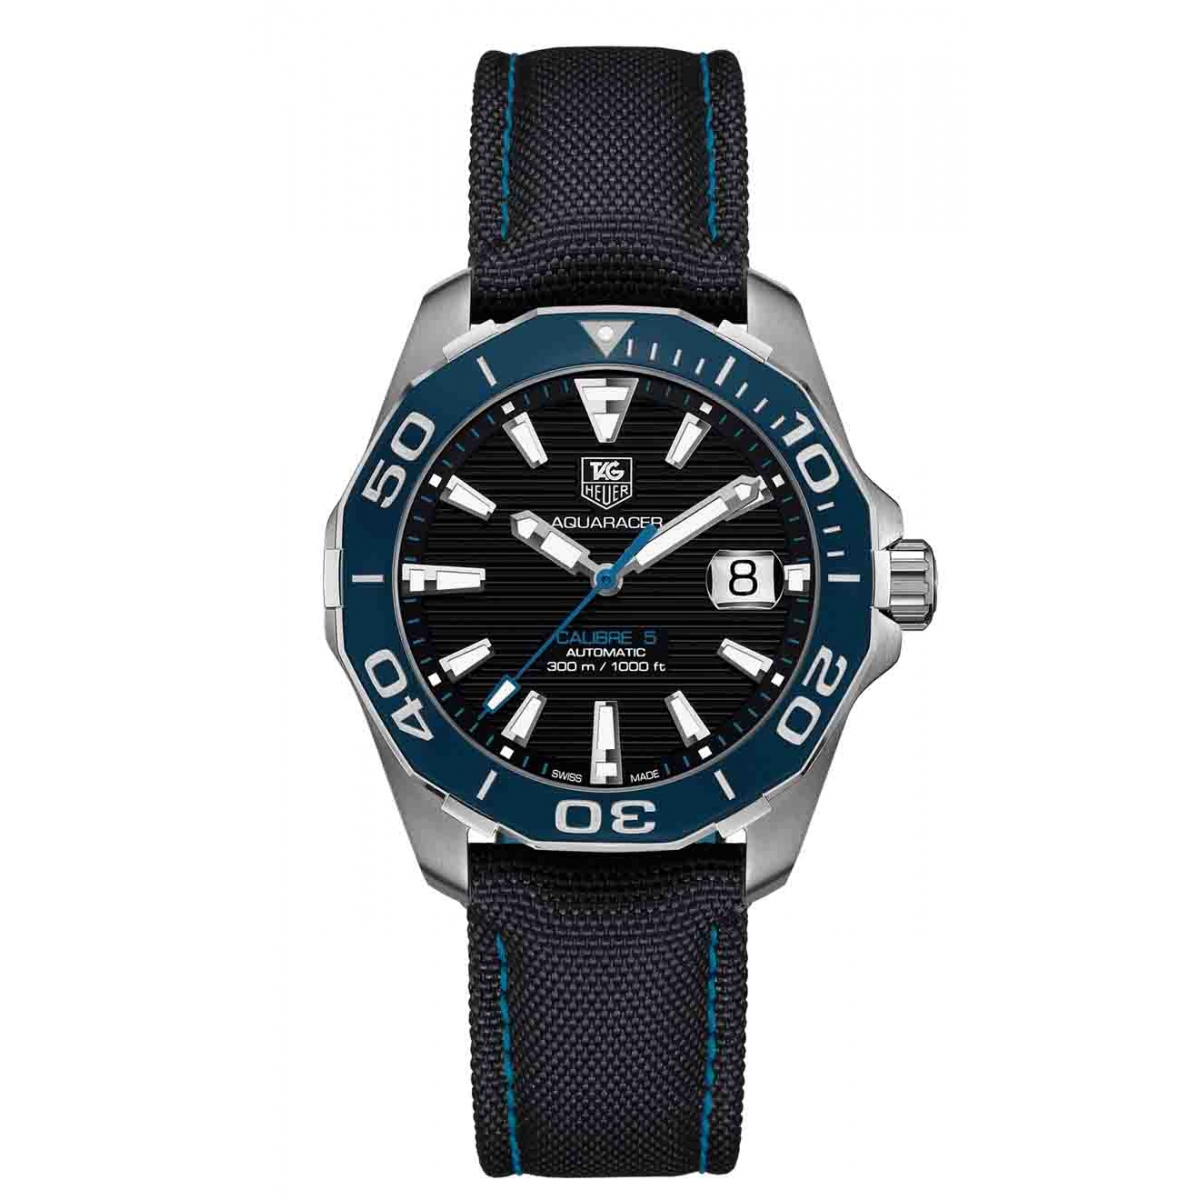 Aquaracer 300M Calibre 5 41mm